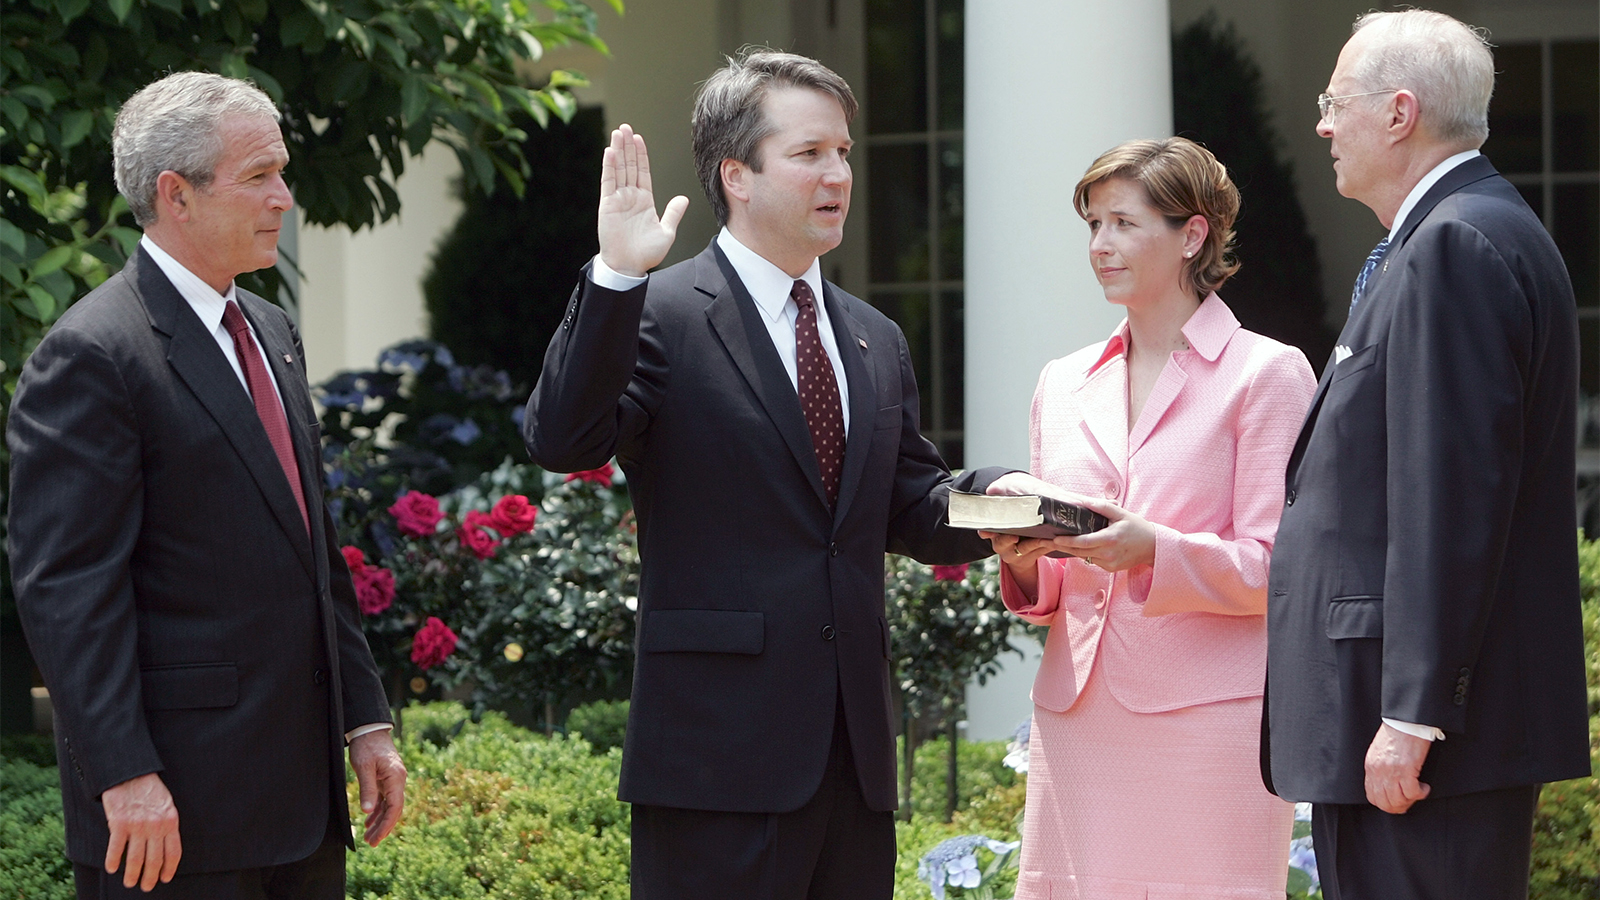 In this June 1, 2006, file photo, from left to right, President Bush watches the swearing-in of Brett Kavanaugh as judge for the U.S. Court of Appeals for the District of Columbia by U.S. Supreme Court Associate Justice Anthony M. Kennedy, far right, during a ceremony in the Rose Garden of the White House, in Washington. Holding the Bible is Kavanaugh's wife, Ashley Kavanaugh. (AP Photo/Pablo Martinez Monsivais)